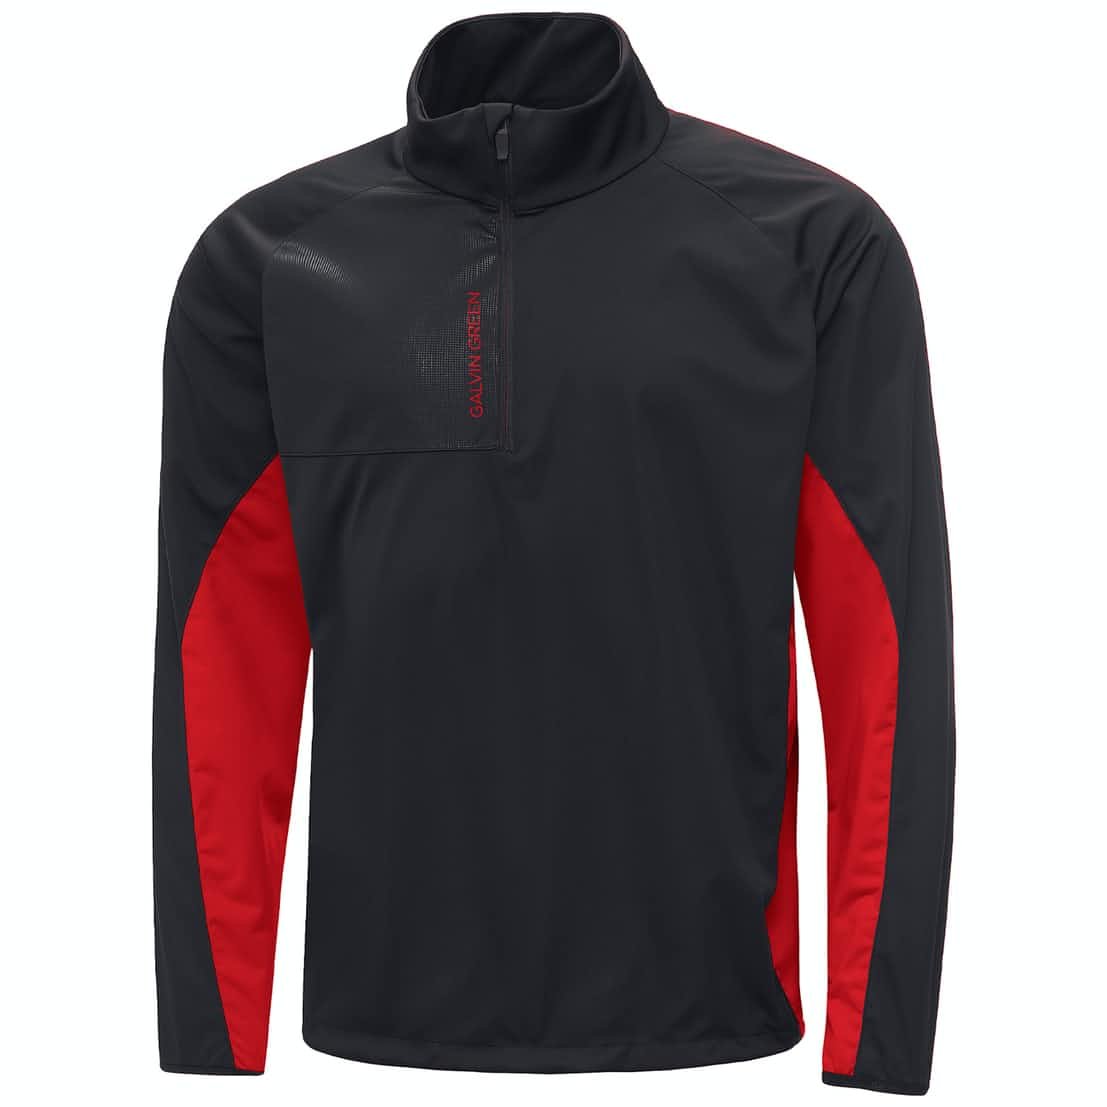 Lincoln Interface-1 HZ Jacket Black/Red - SS19